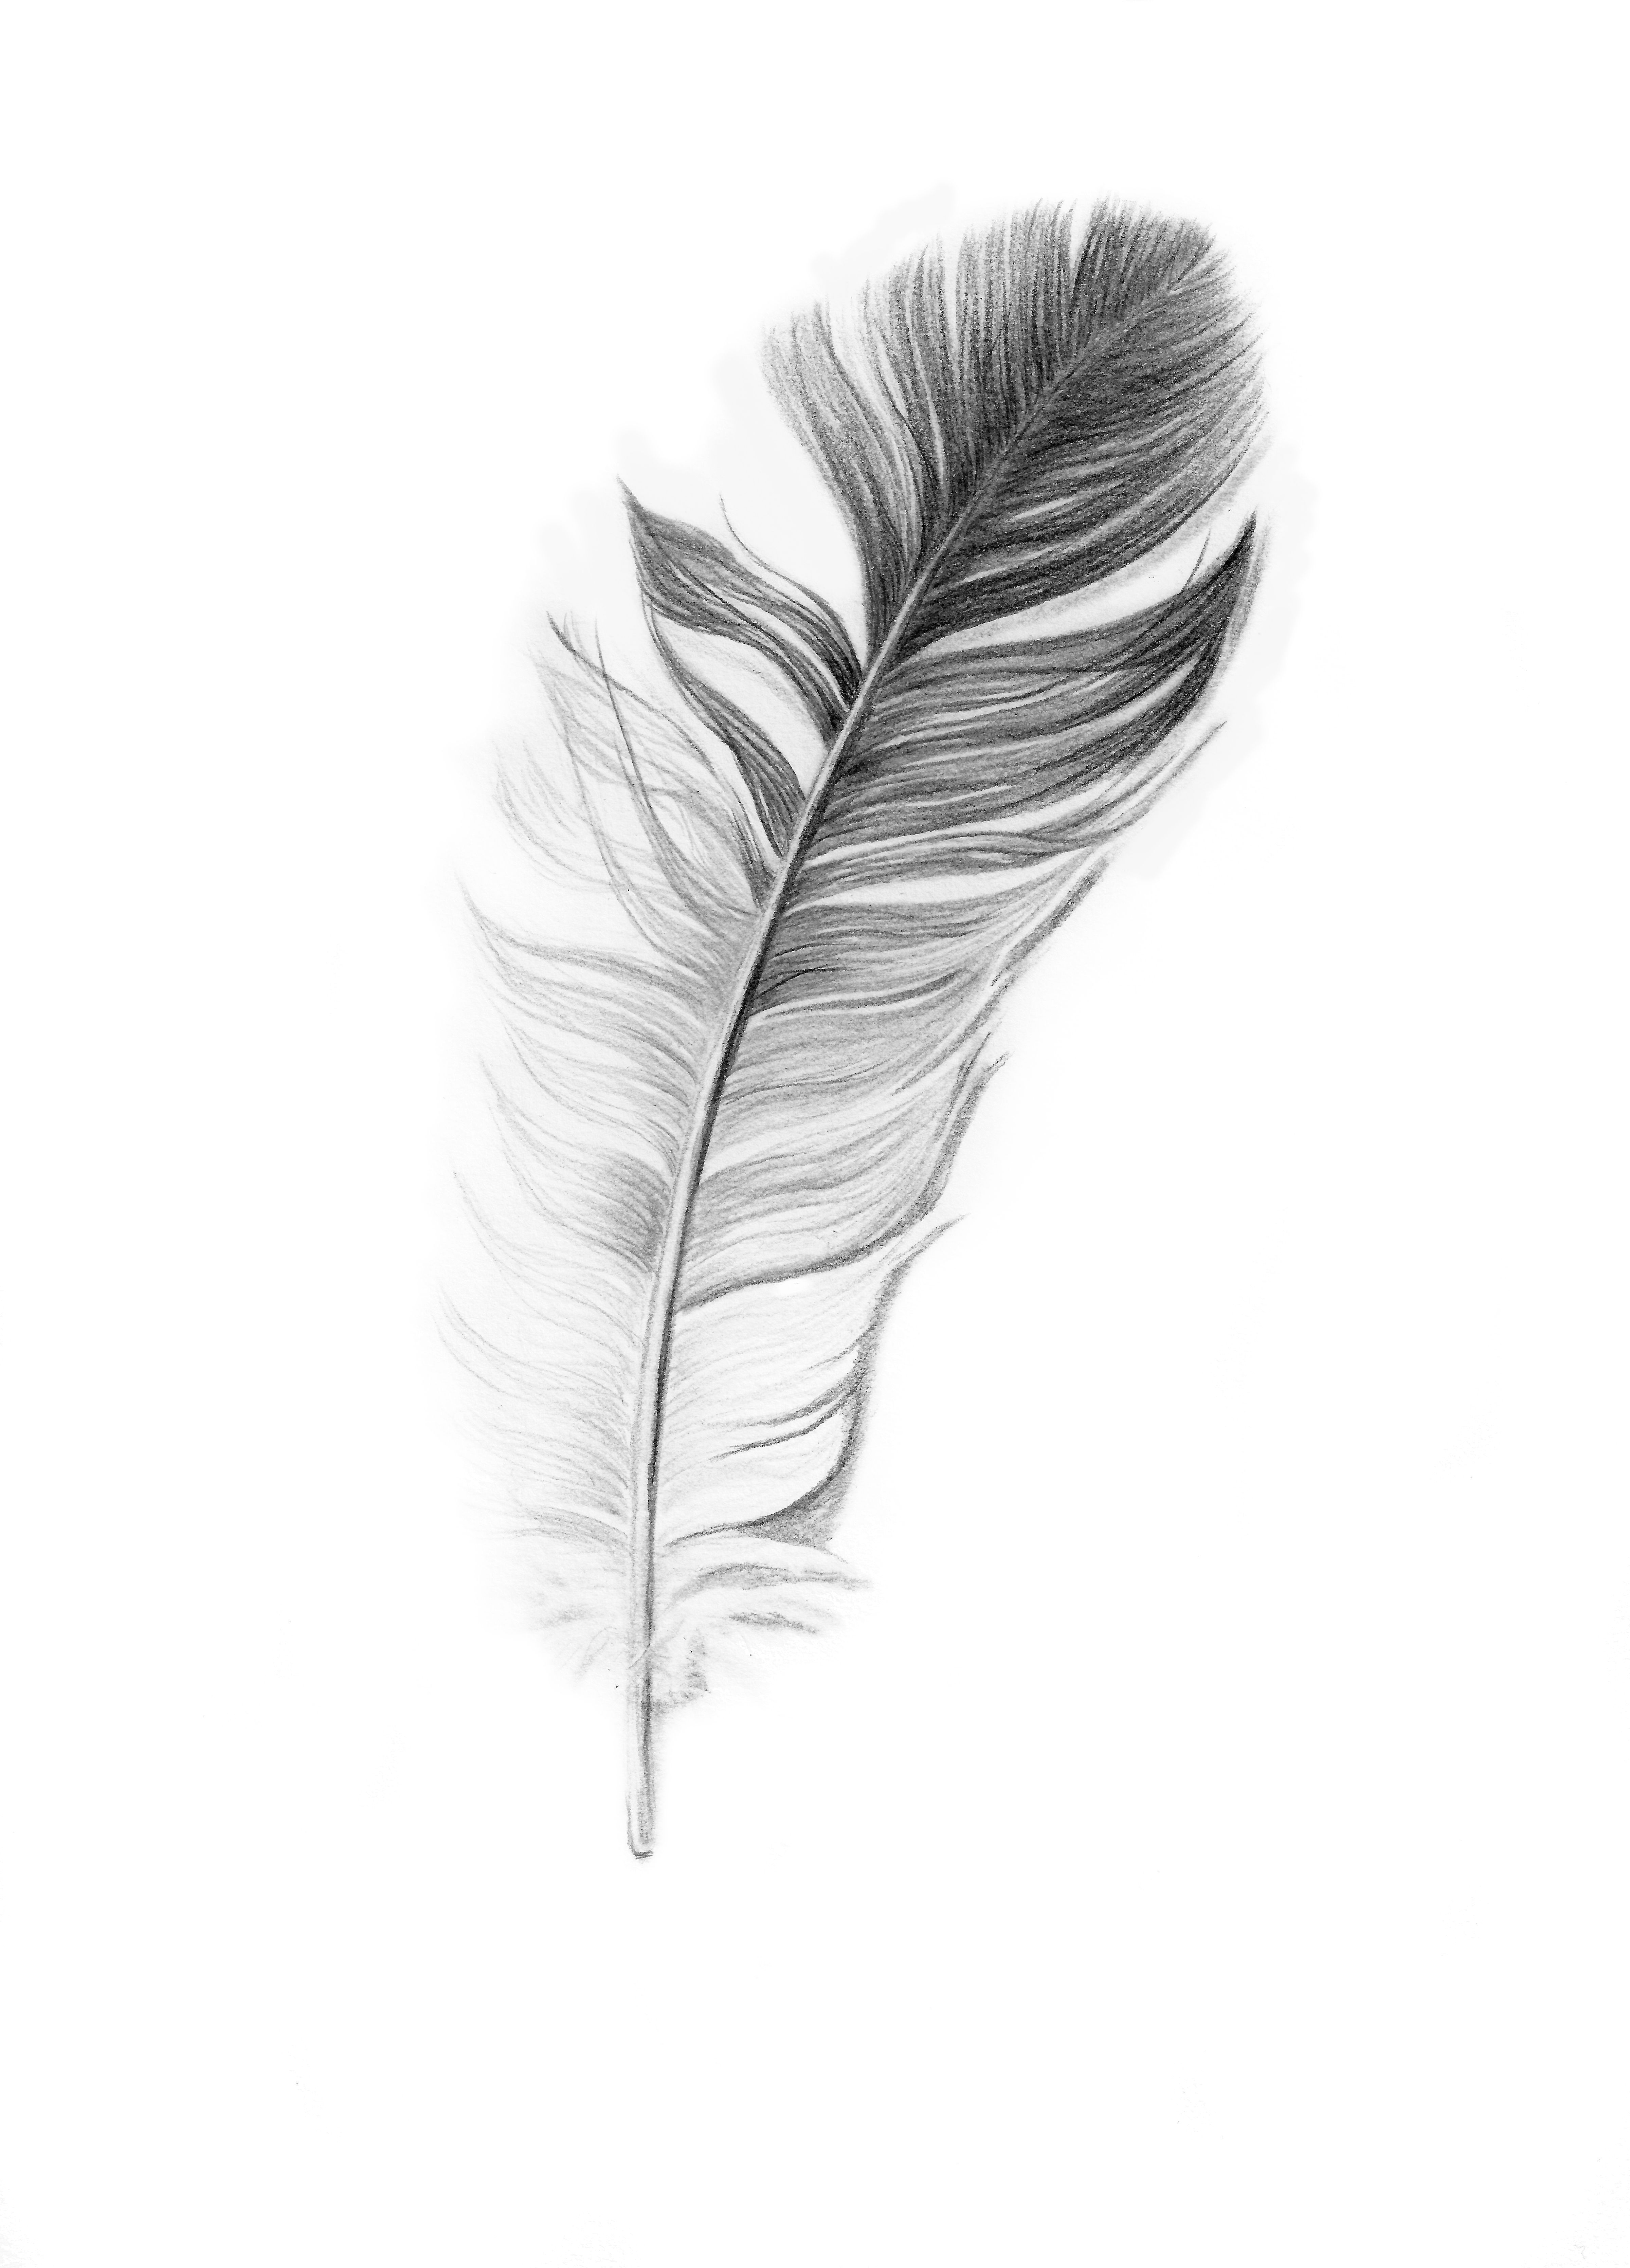 Veer - feather, pencil drawing, print on fine-art paper by Sabine van Loon -  Ve... -  Veer – feather, pencil drawing, print on fine-art paper by Sabine van Loon –  Veer – feather, - #ankletattoo #cooltattoo #dogtattoo #drawing #Feather #feathertattoo #fineart #Loon #Paper #pencil #Print #Sabine #van #Veer